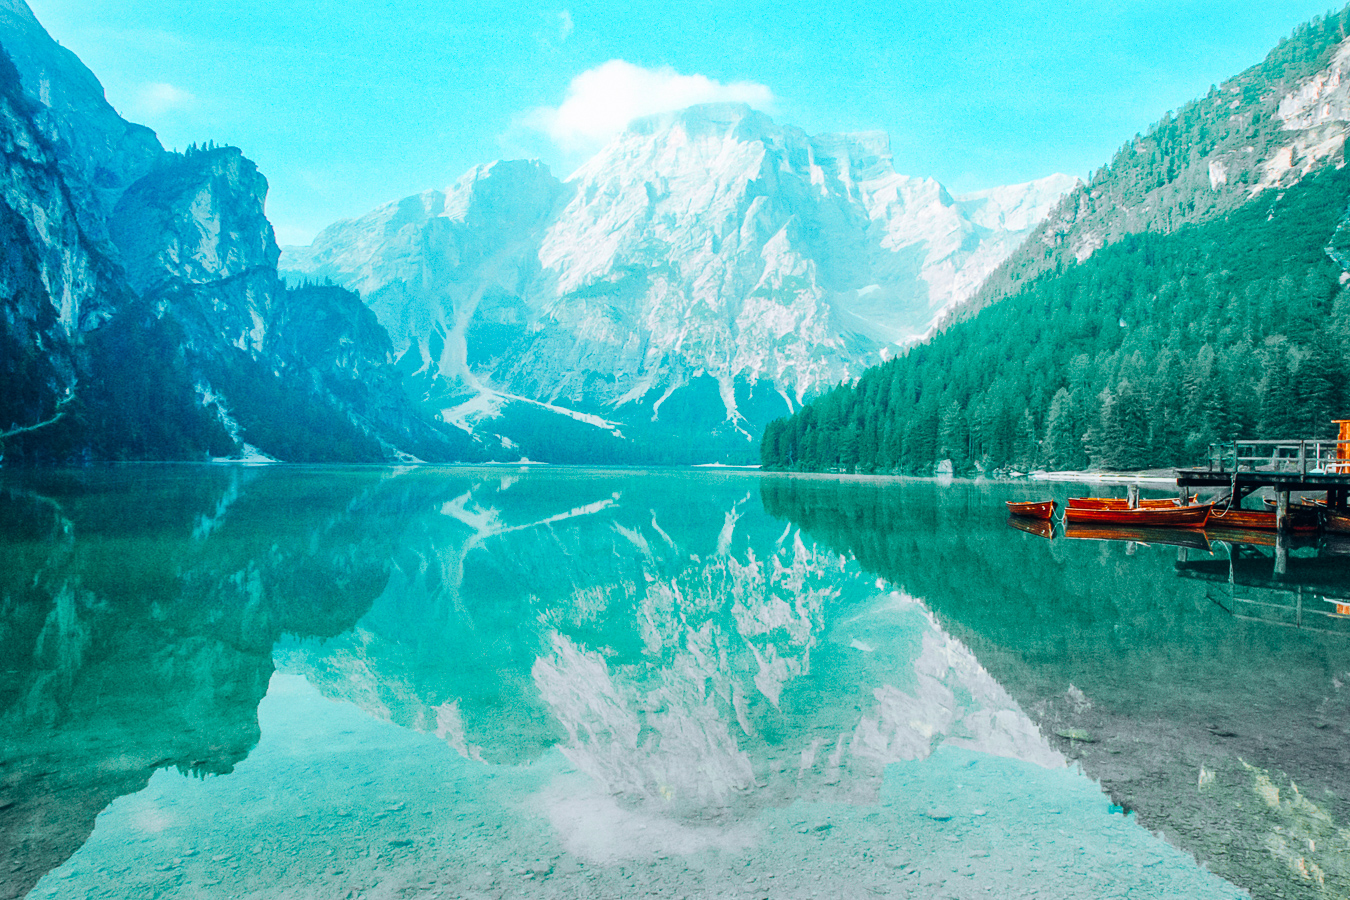 A beautiful lake in the Dolomites with mountains